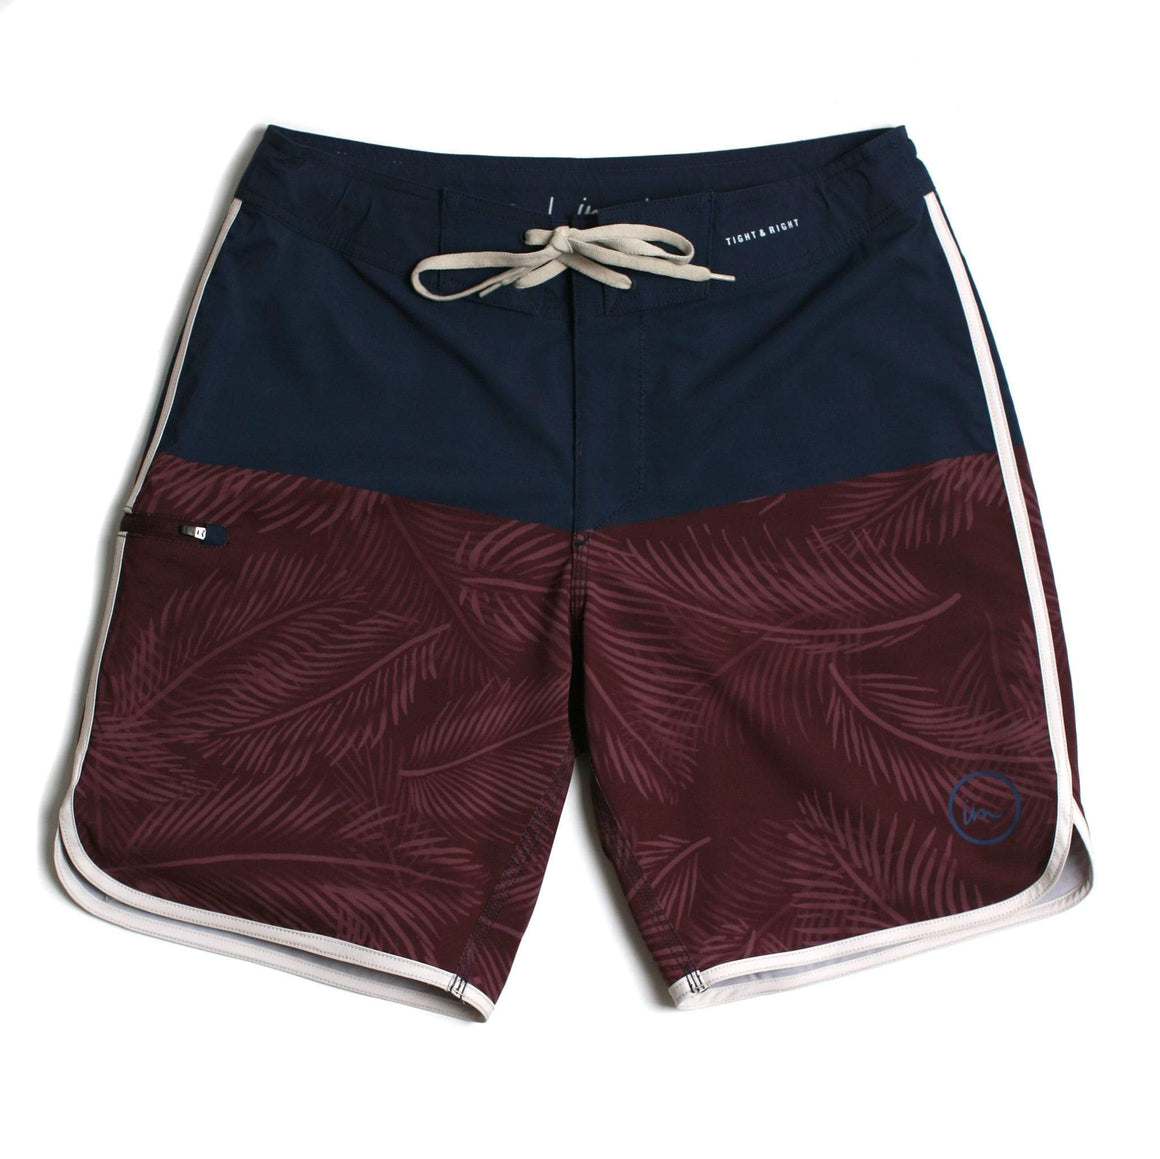 Imperial Motion Vislon Boardshort - Navy/Burgundy